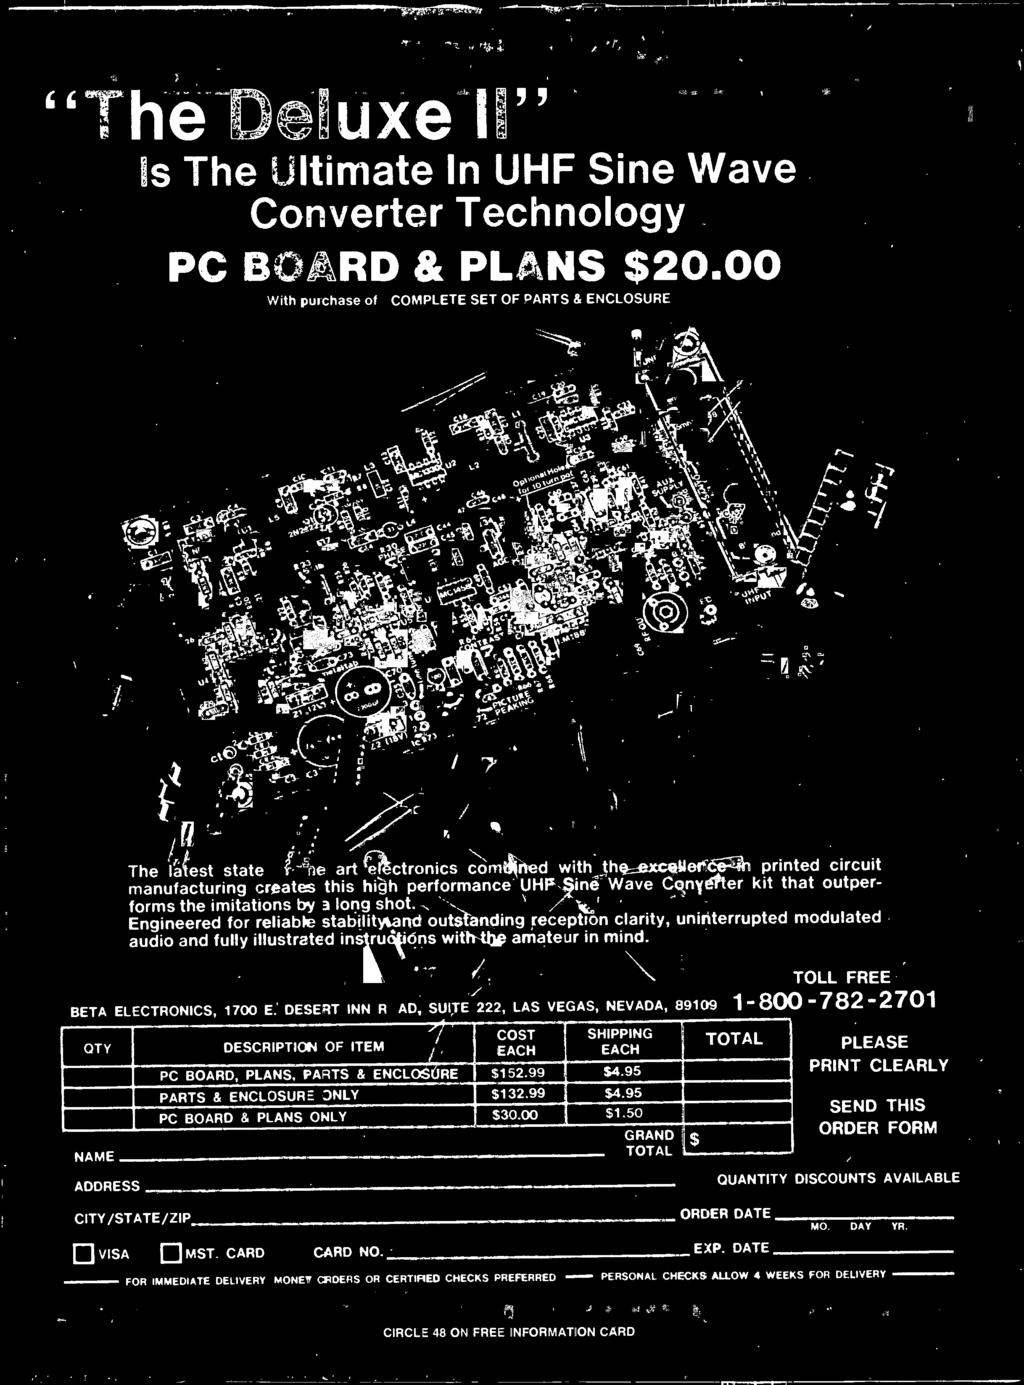 DESERT INN ROAD. SUITE 222, LAS VEGAS, NEVADA, 89109 QTY DESCRIPTION OF ITEM COST EACH SHIPPING EACH PC BOARD, PLANS, PARTS & ENCLOSURE $152.99 $4.95 PARTS & ENCLOSURE ONLY $132.99 $4.95 PC BOARD & PLANS ONLY $30.